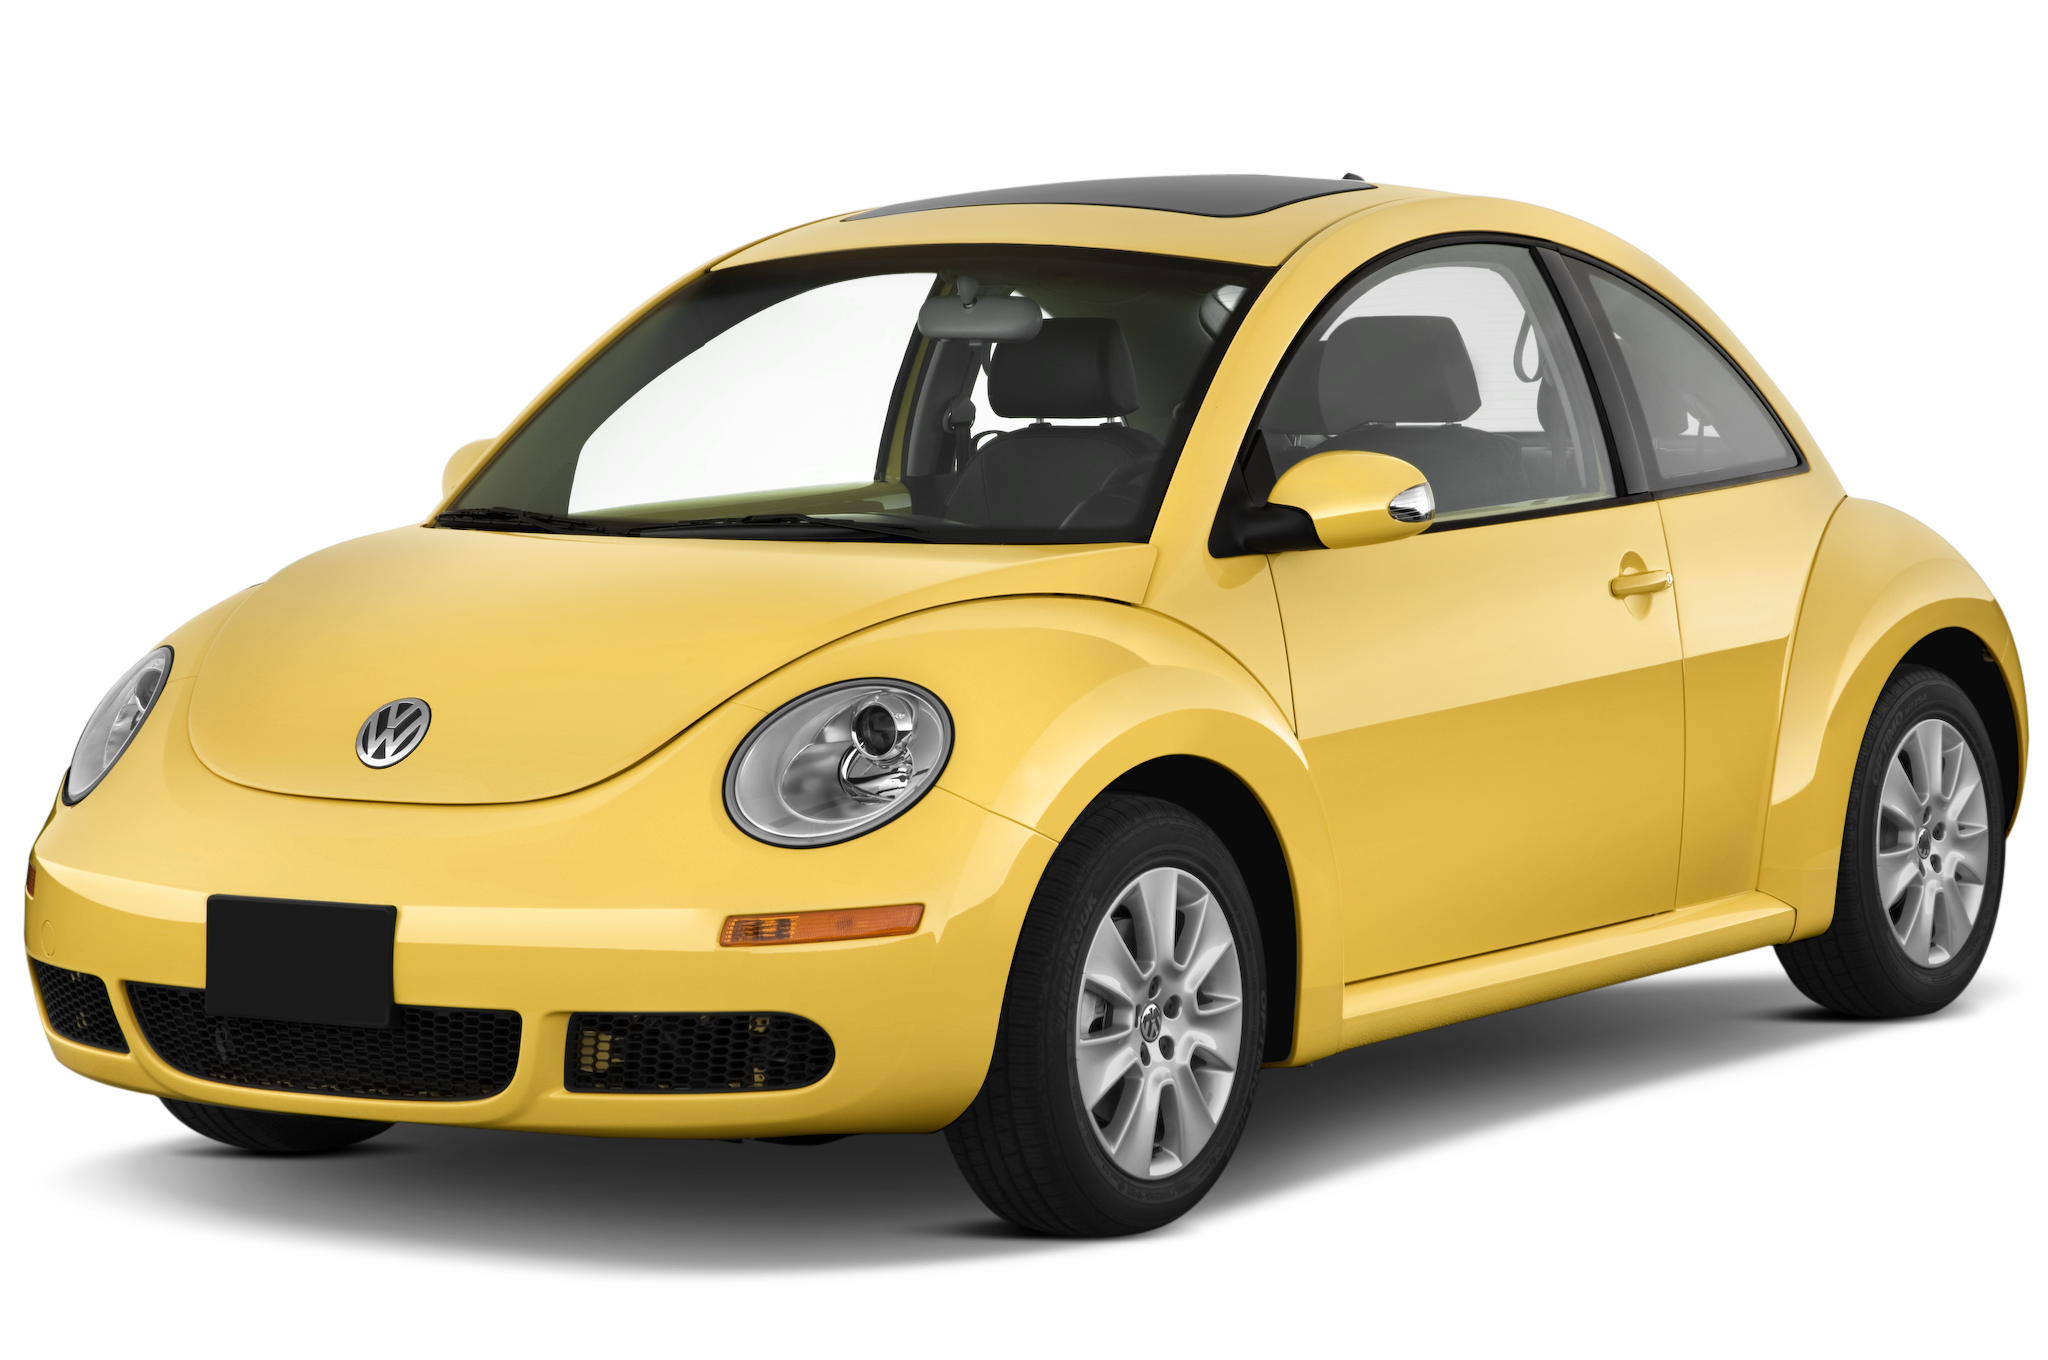 Feature Flick Jay Leno Compares 2012 Volkswagen Beetle To